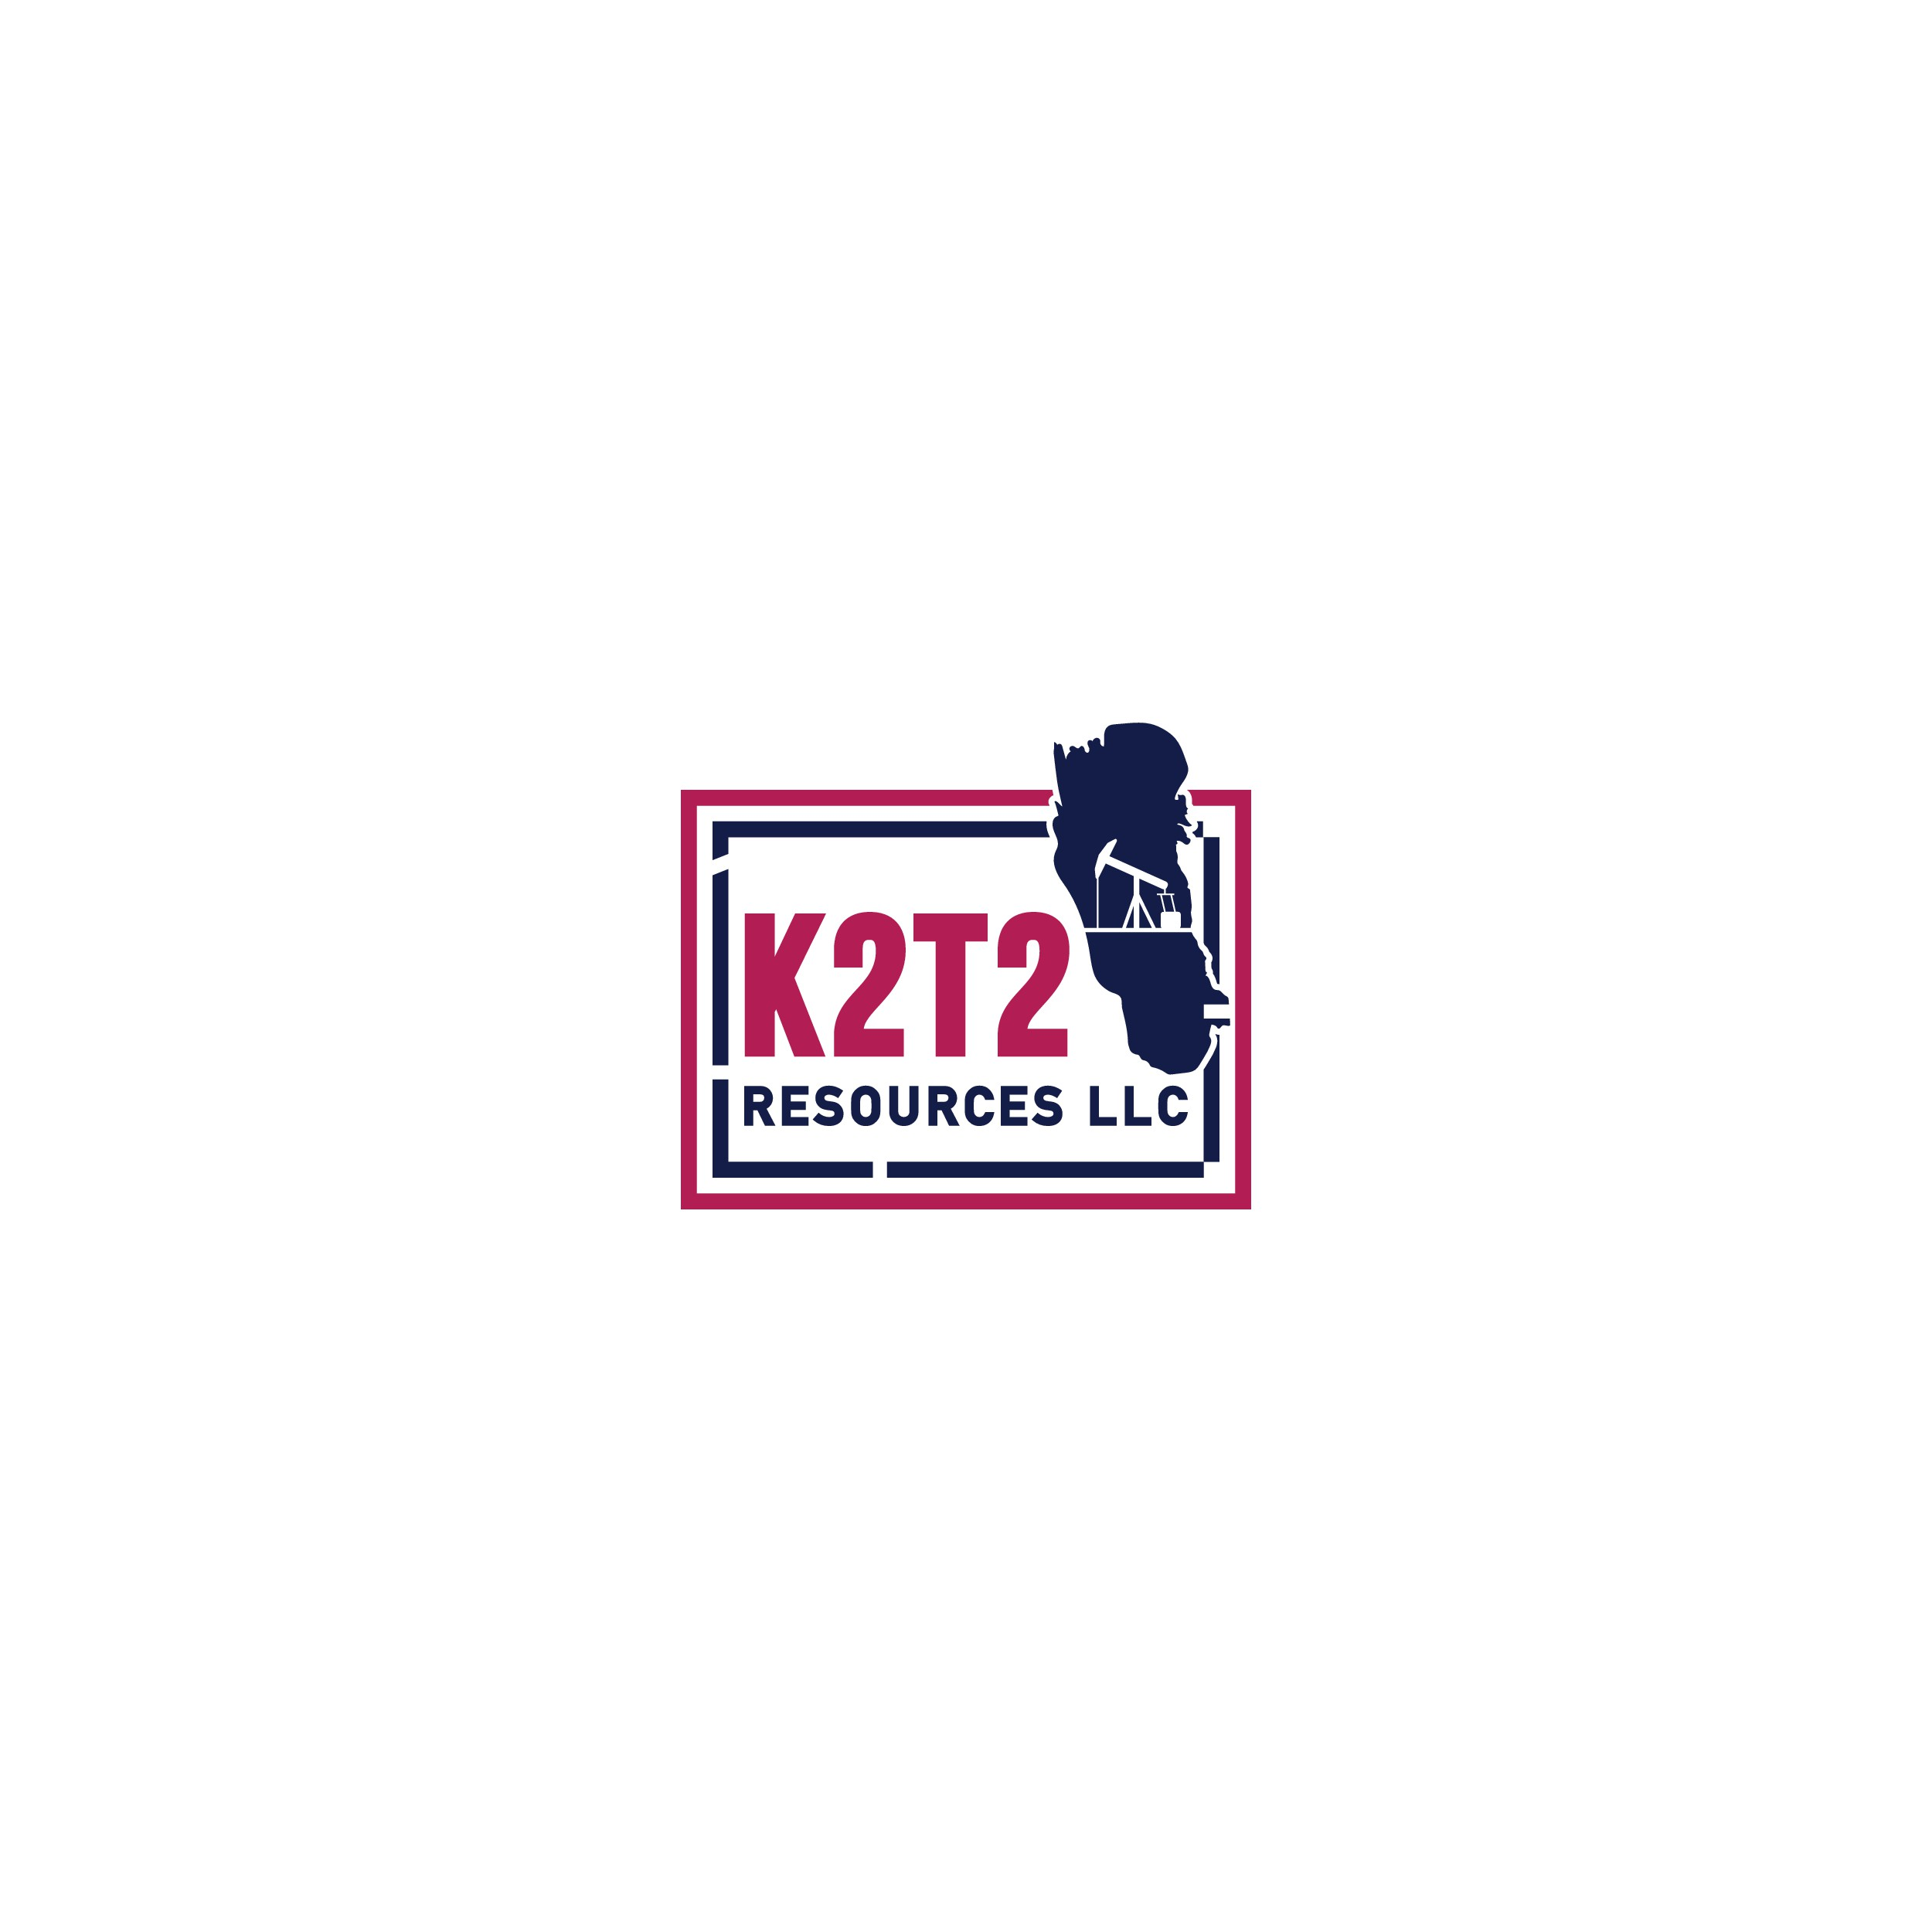 Please help us make our existing K2T2 logo better!